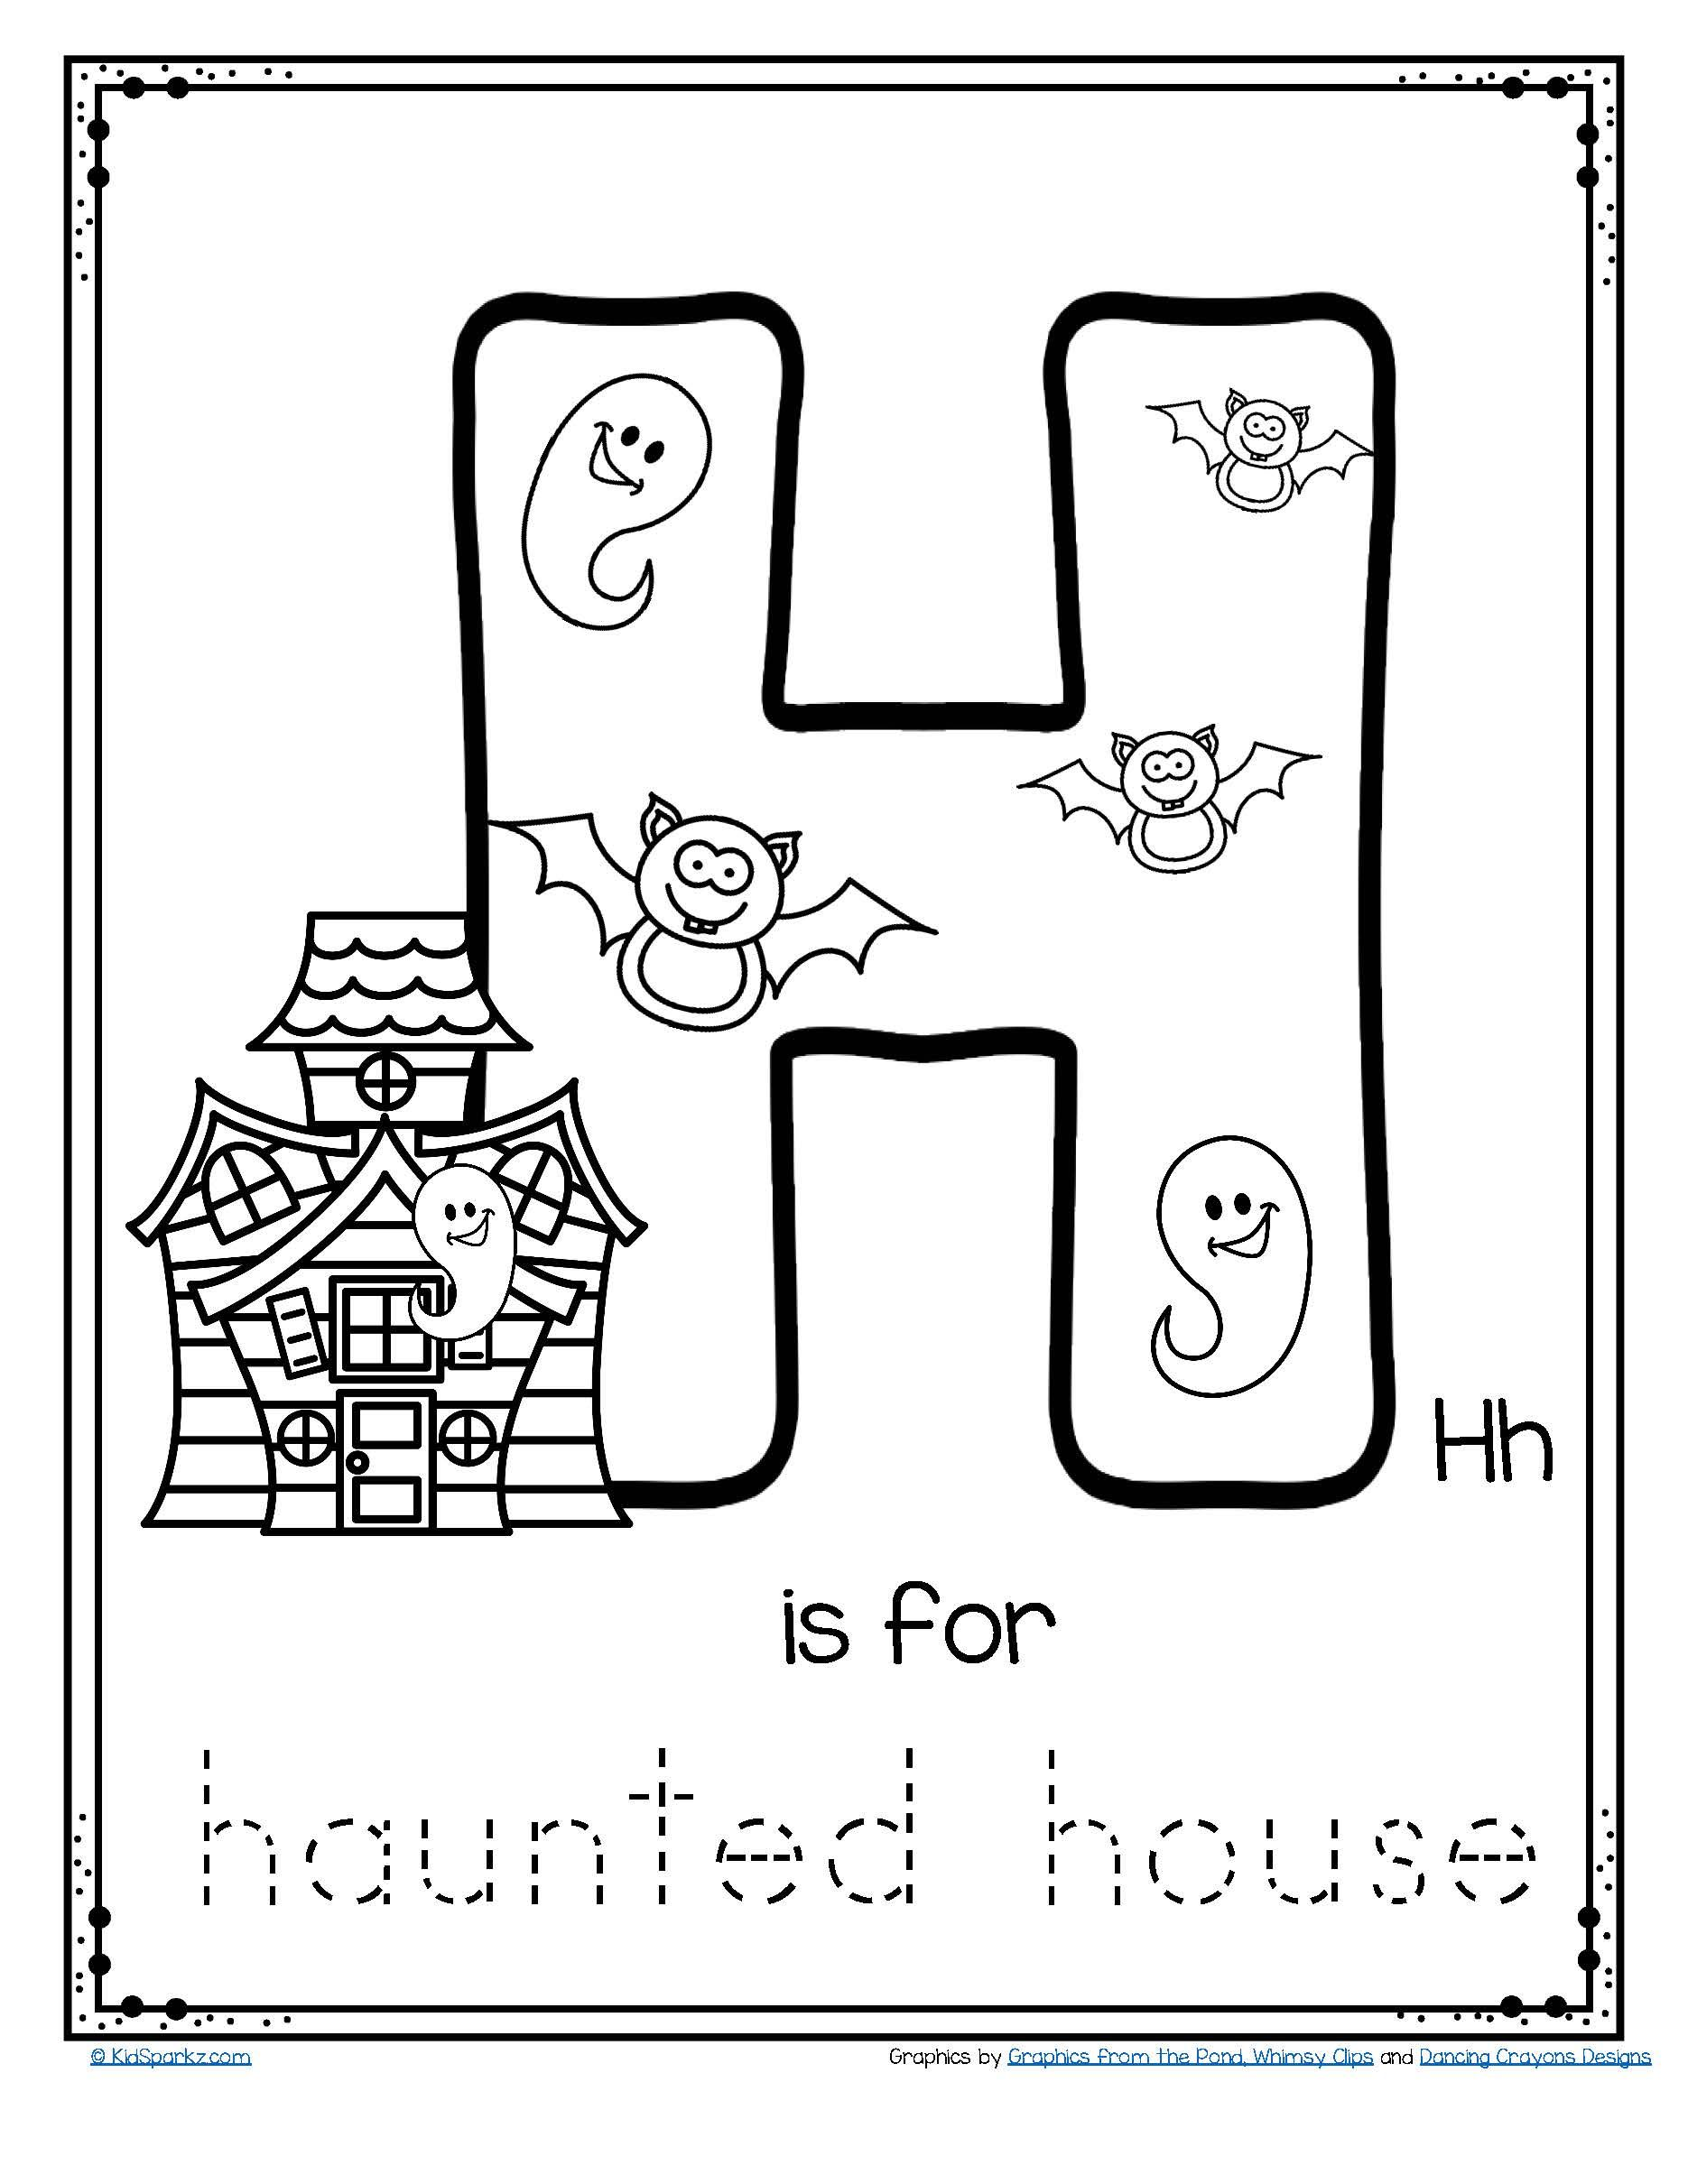 Halloween Letter H Is For Haunted House Trace And Color Alphabet Printable Free Preschool Letter Crafts Letter A Crafts Letter A Coloring Pages [ 2420 x 1870 Pixel ]